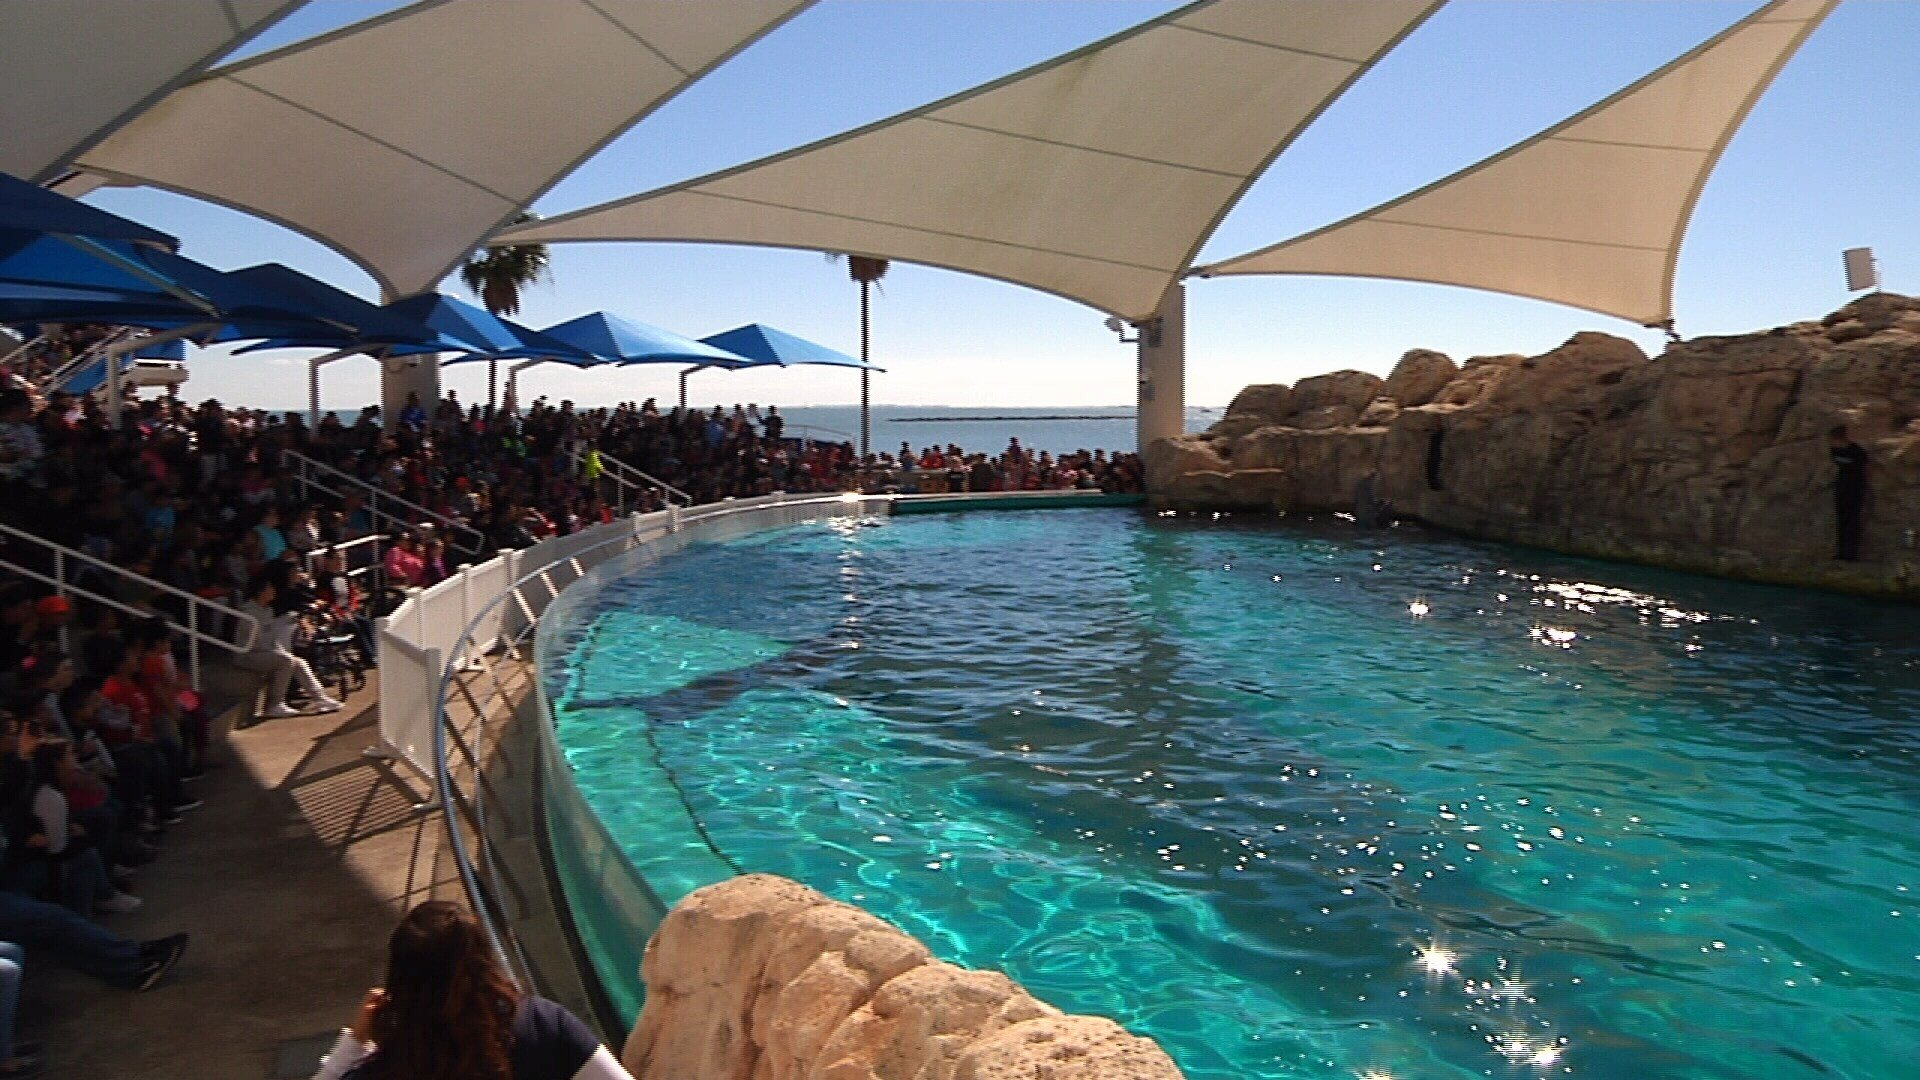 Crowds pack the Aquarium for a previous Dollar Day.